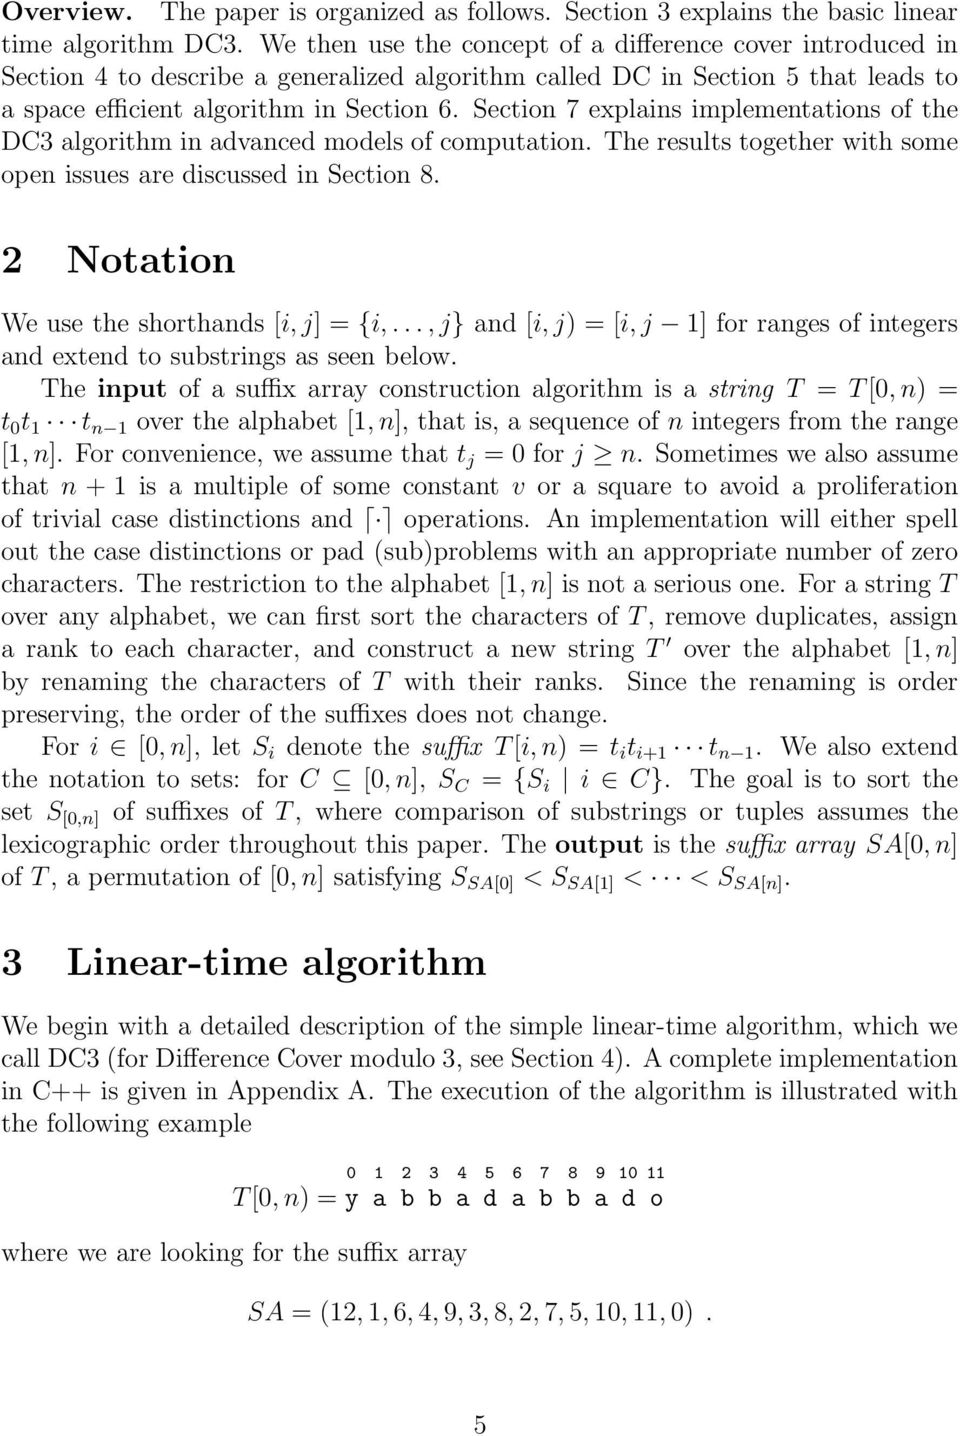 Section 7 explains implementations of the DC3 algorithm in advanced models of computation. The results together with some open issues are discussed in Section 8.